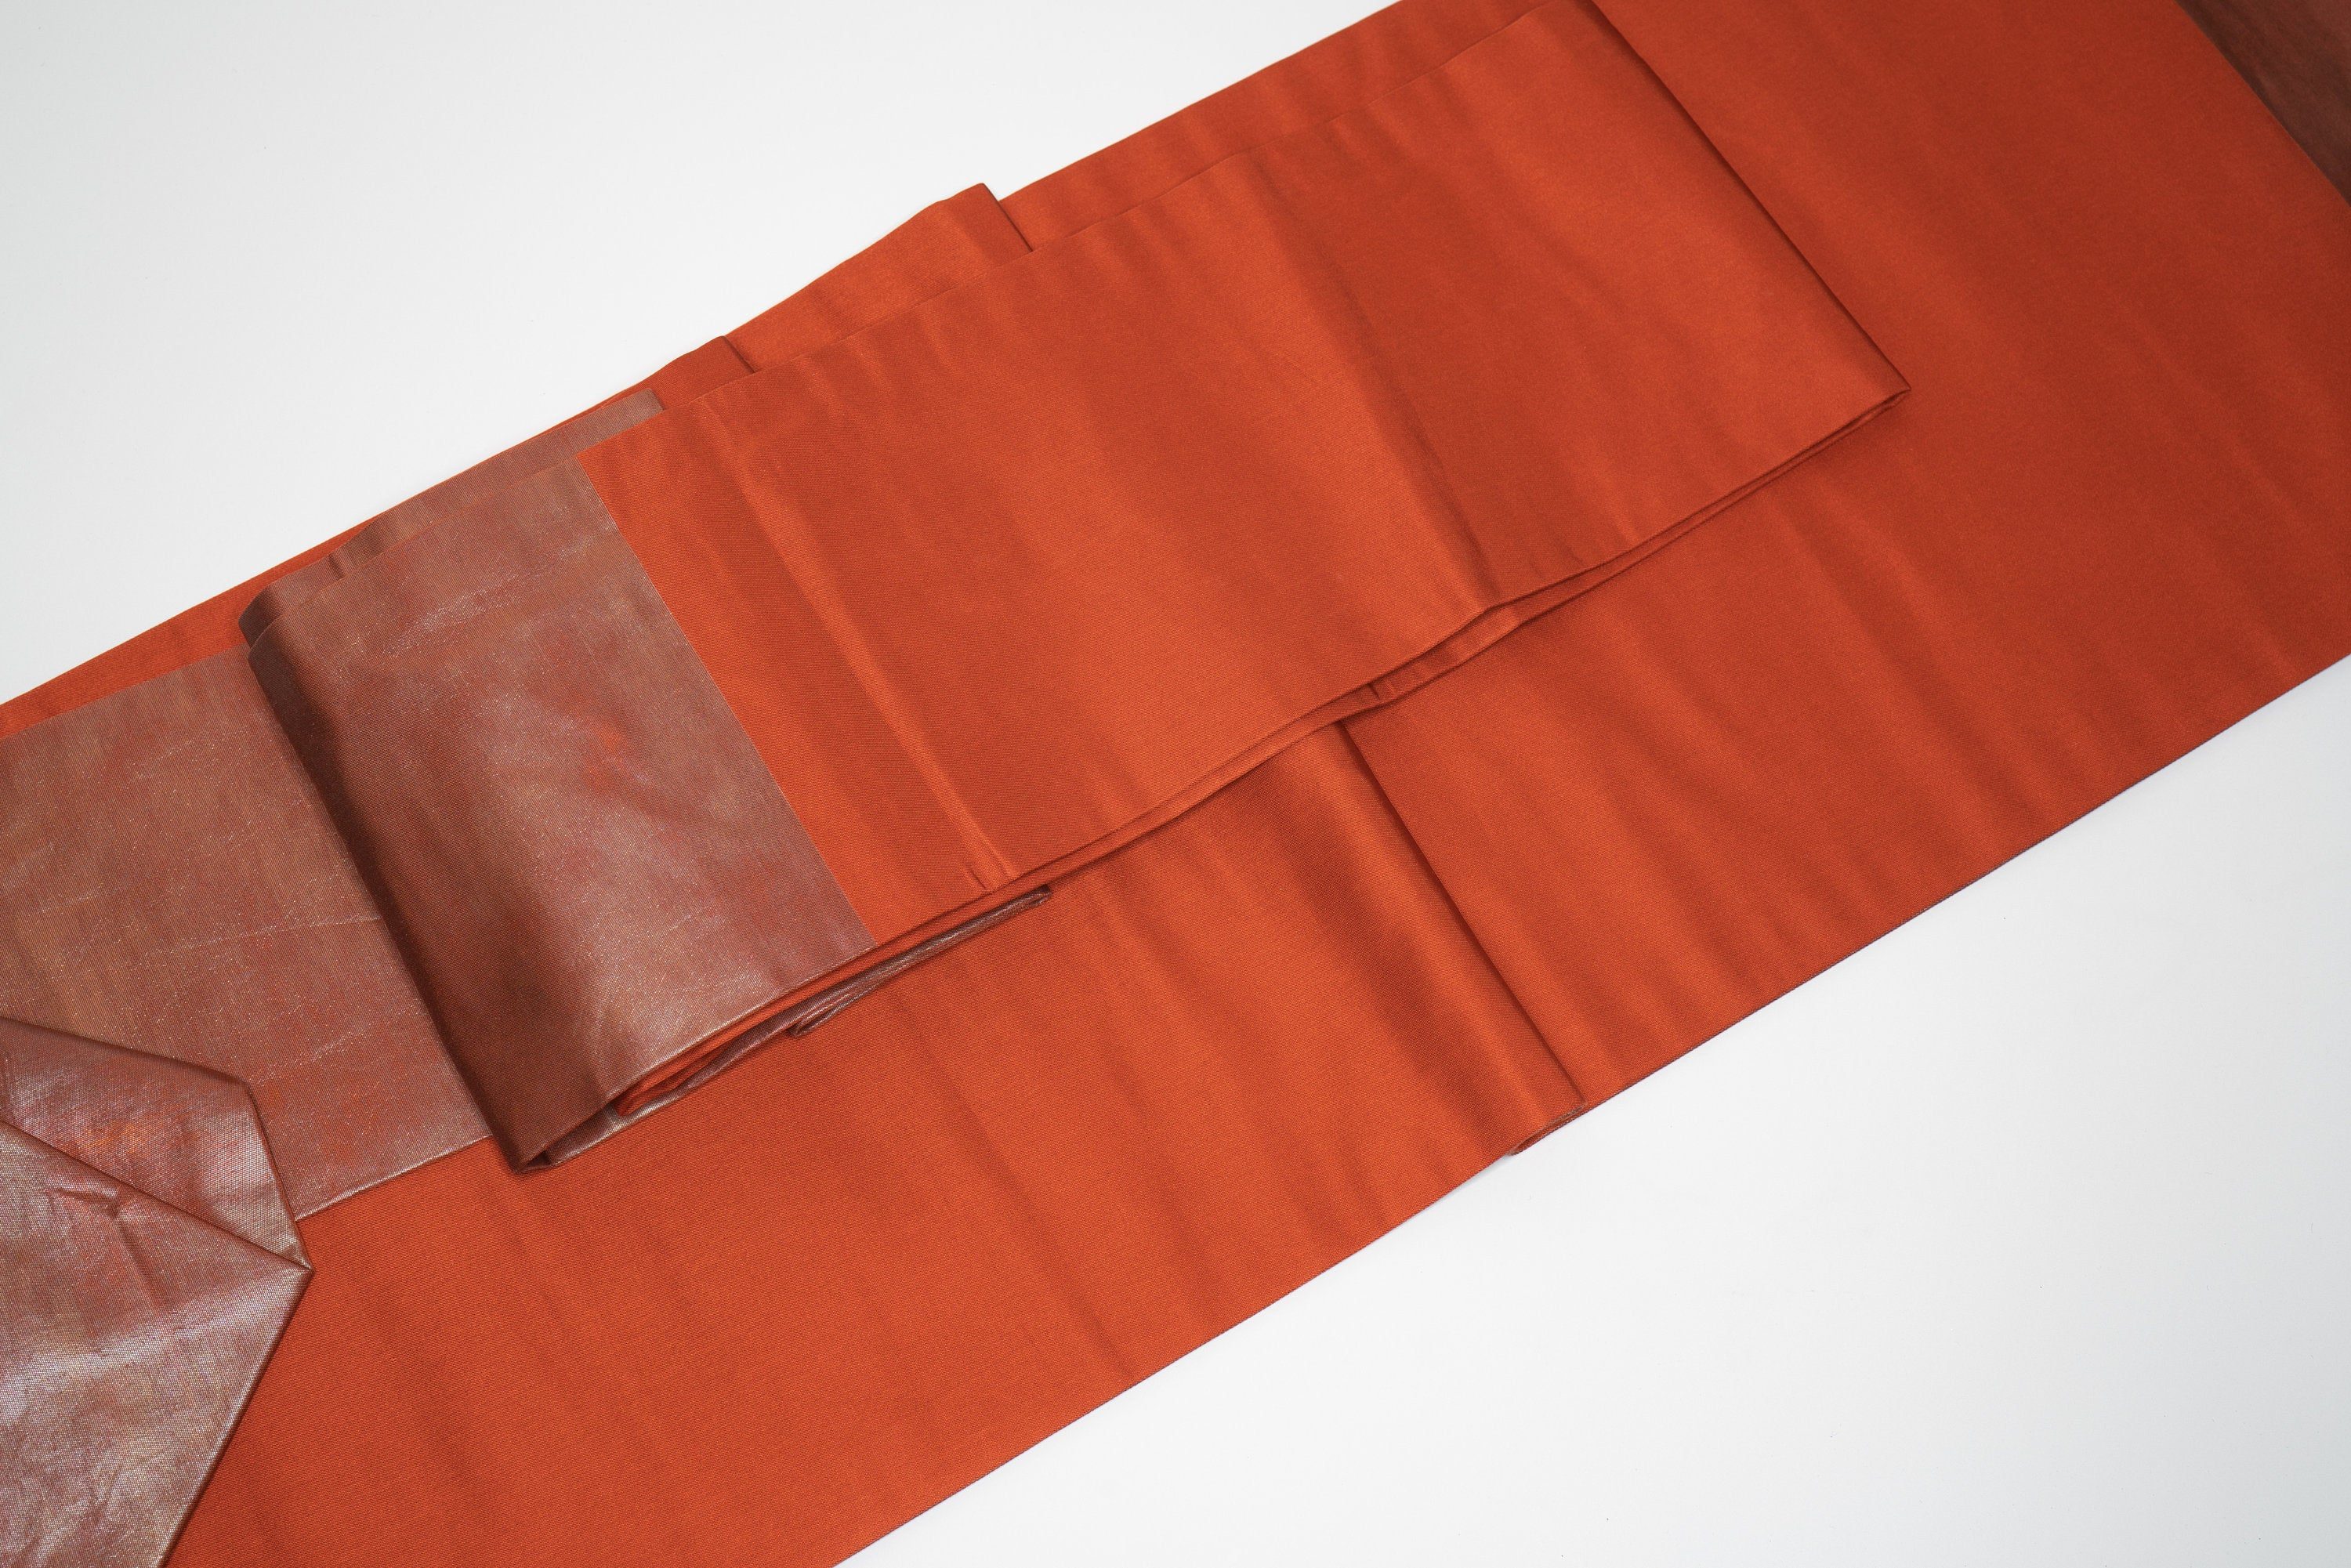 Simple Shiny Reddish Orange Obi - Vintage Traditional Japan Kimono Belt